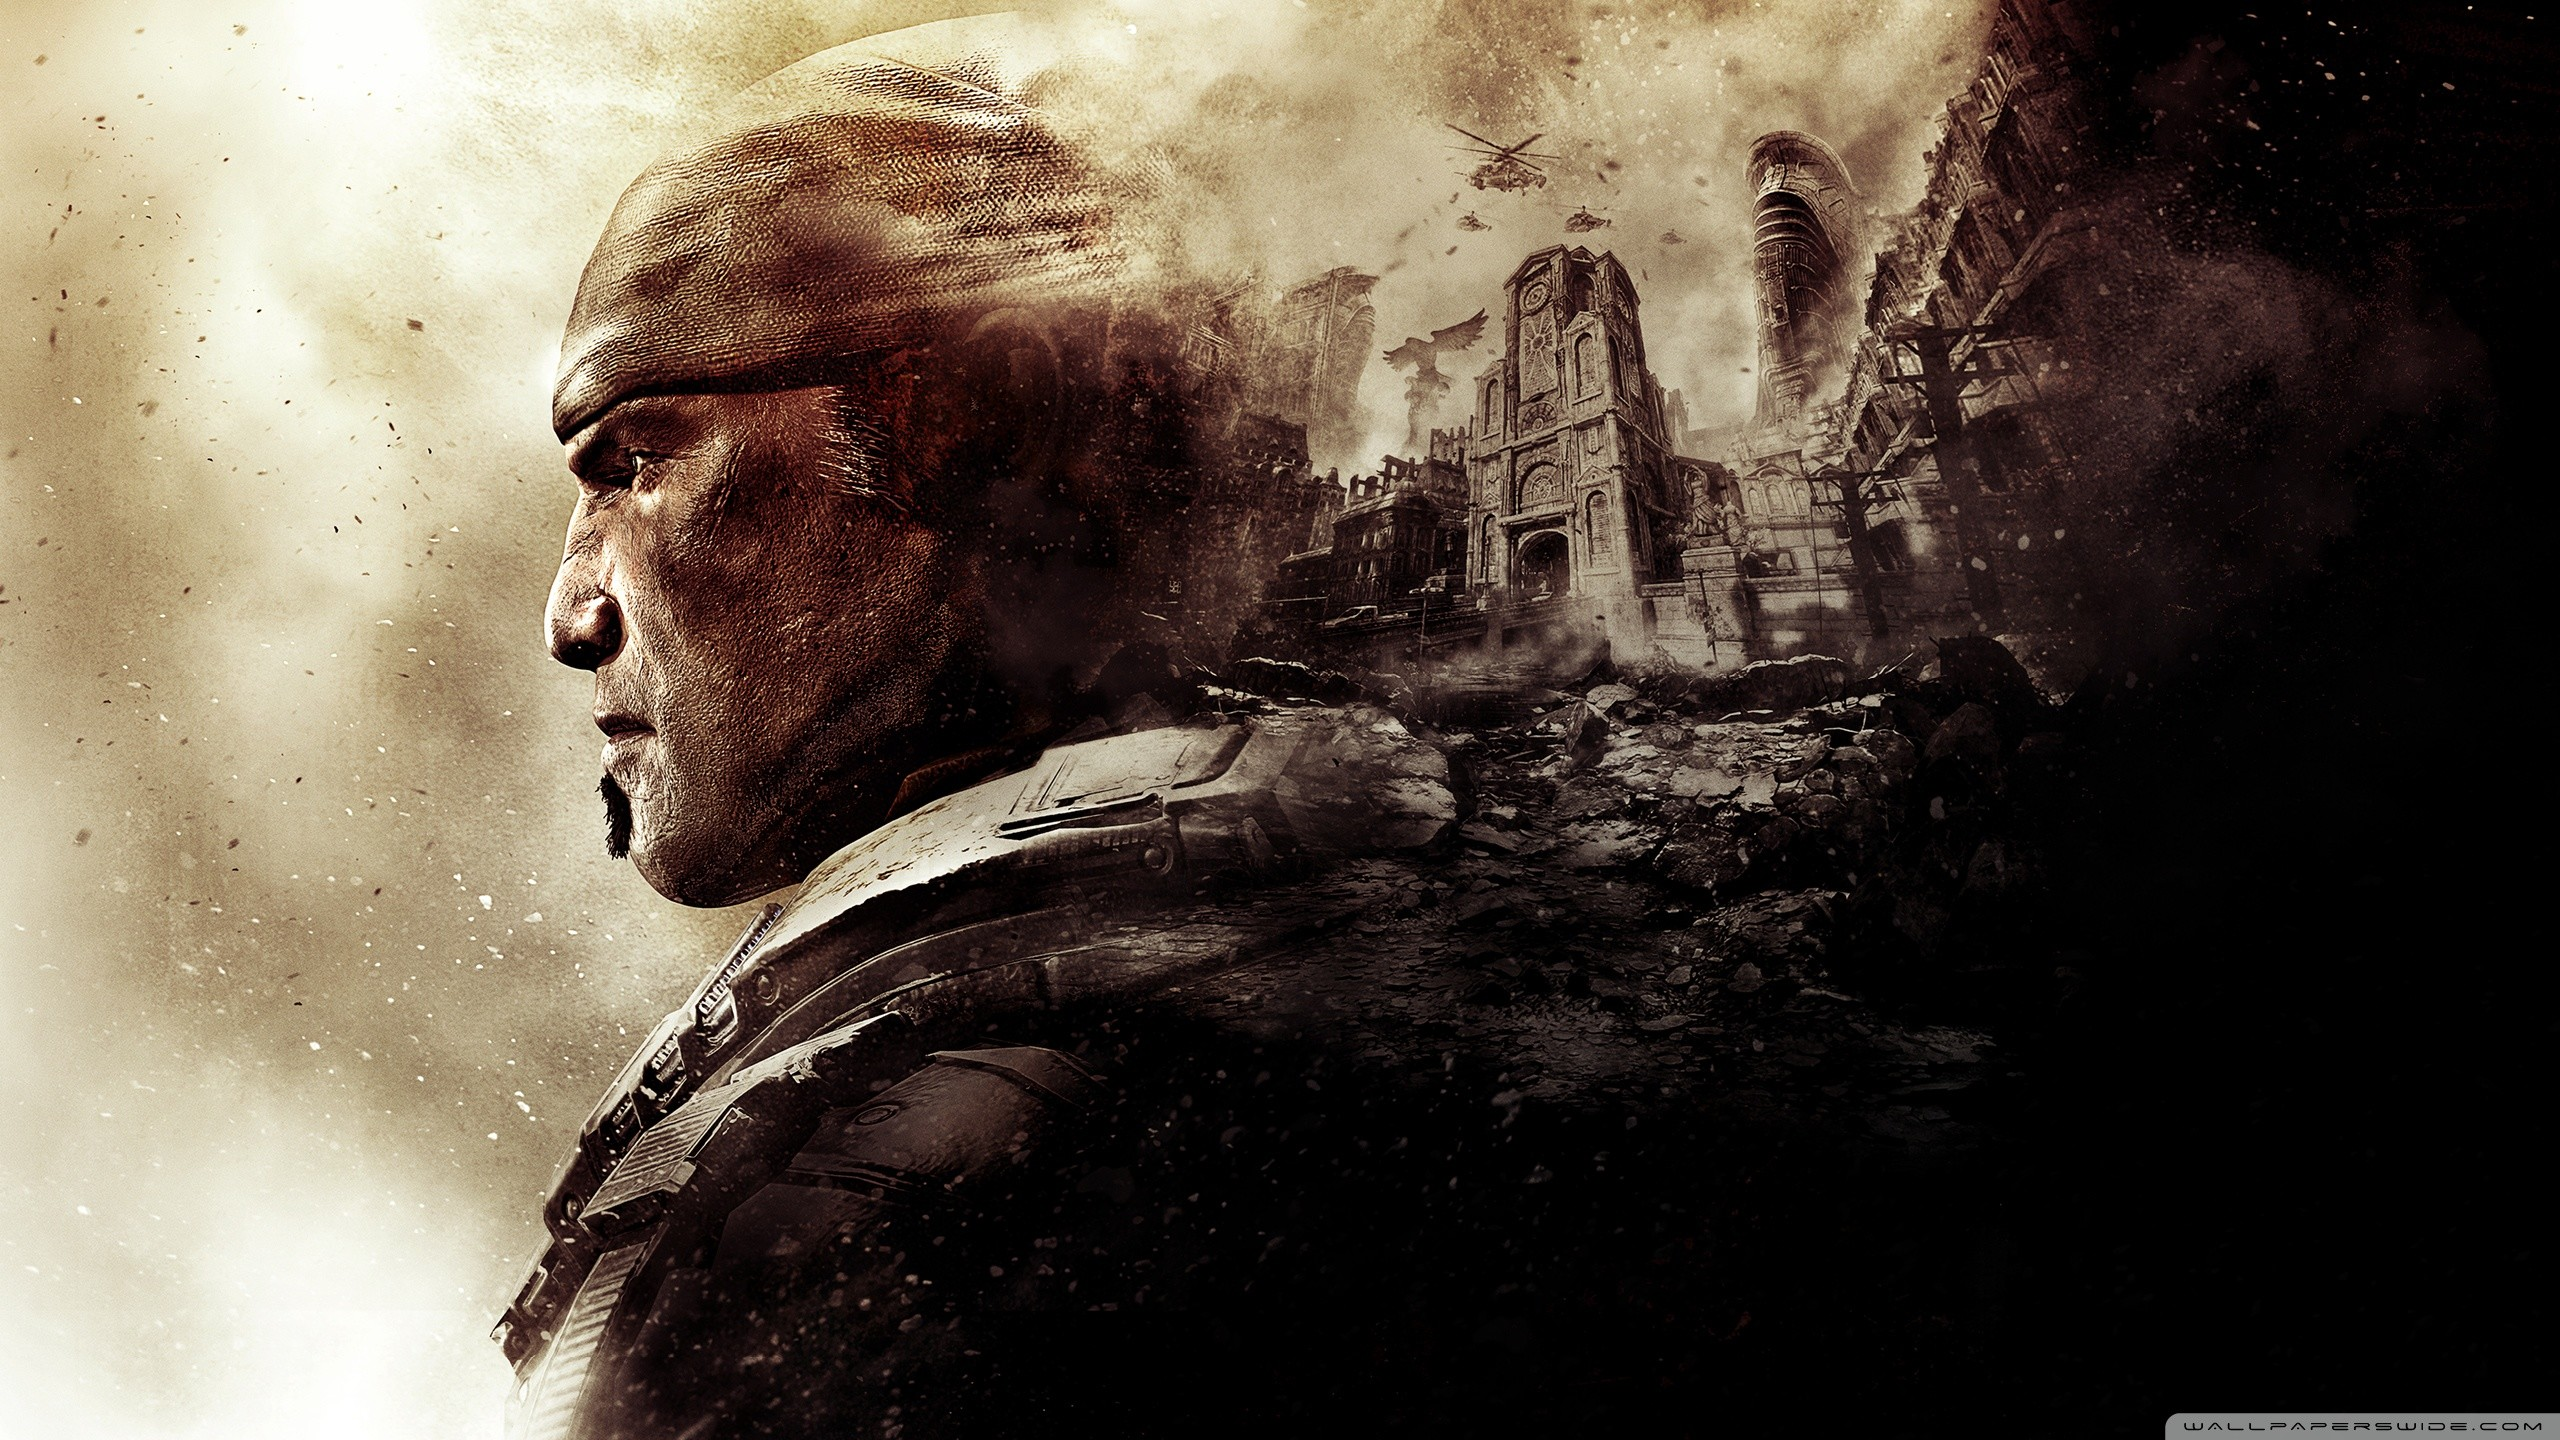 Gears of war wallpapers wallpapertag - Best war wallpapers hd ...